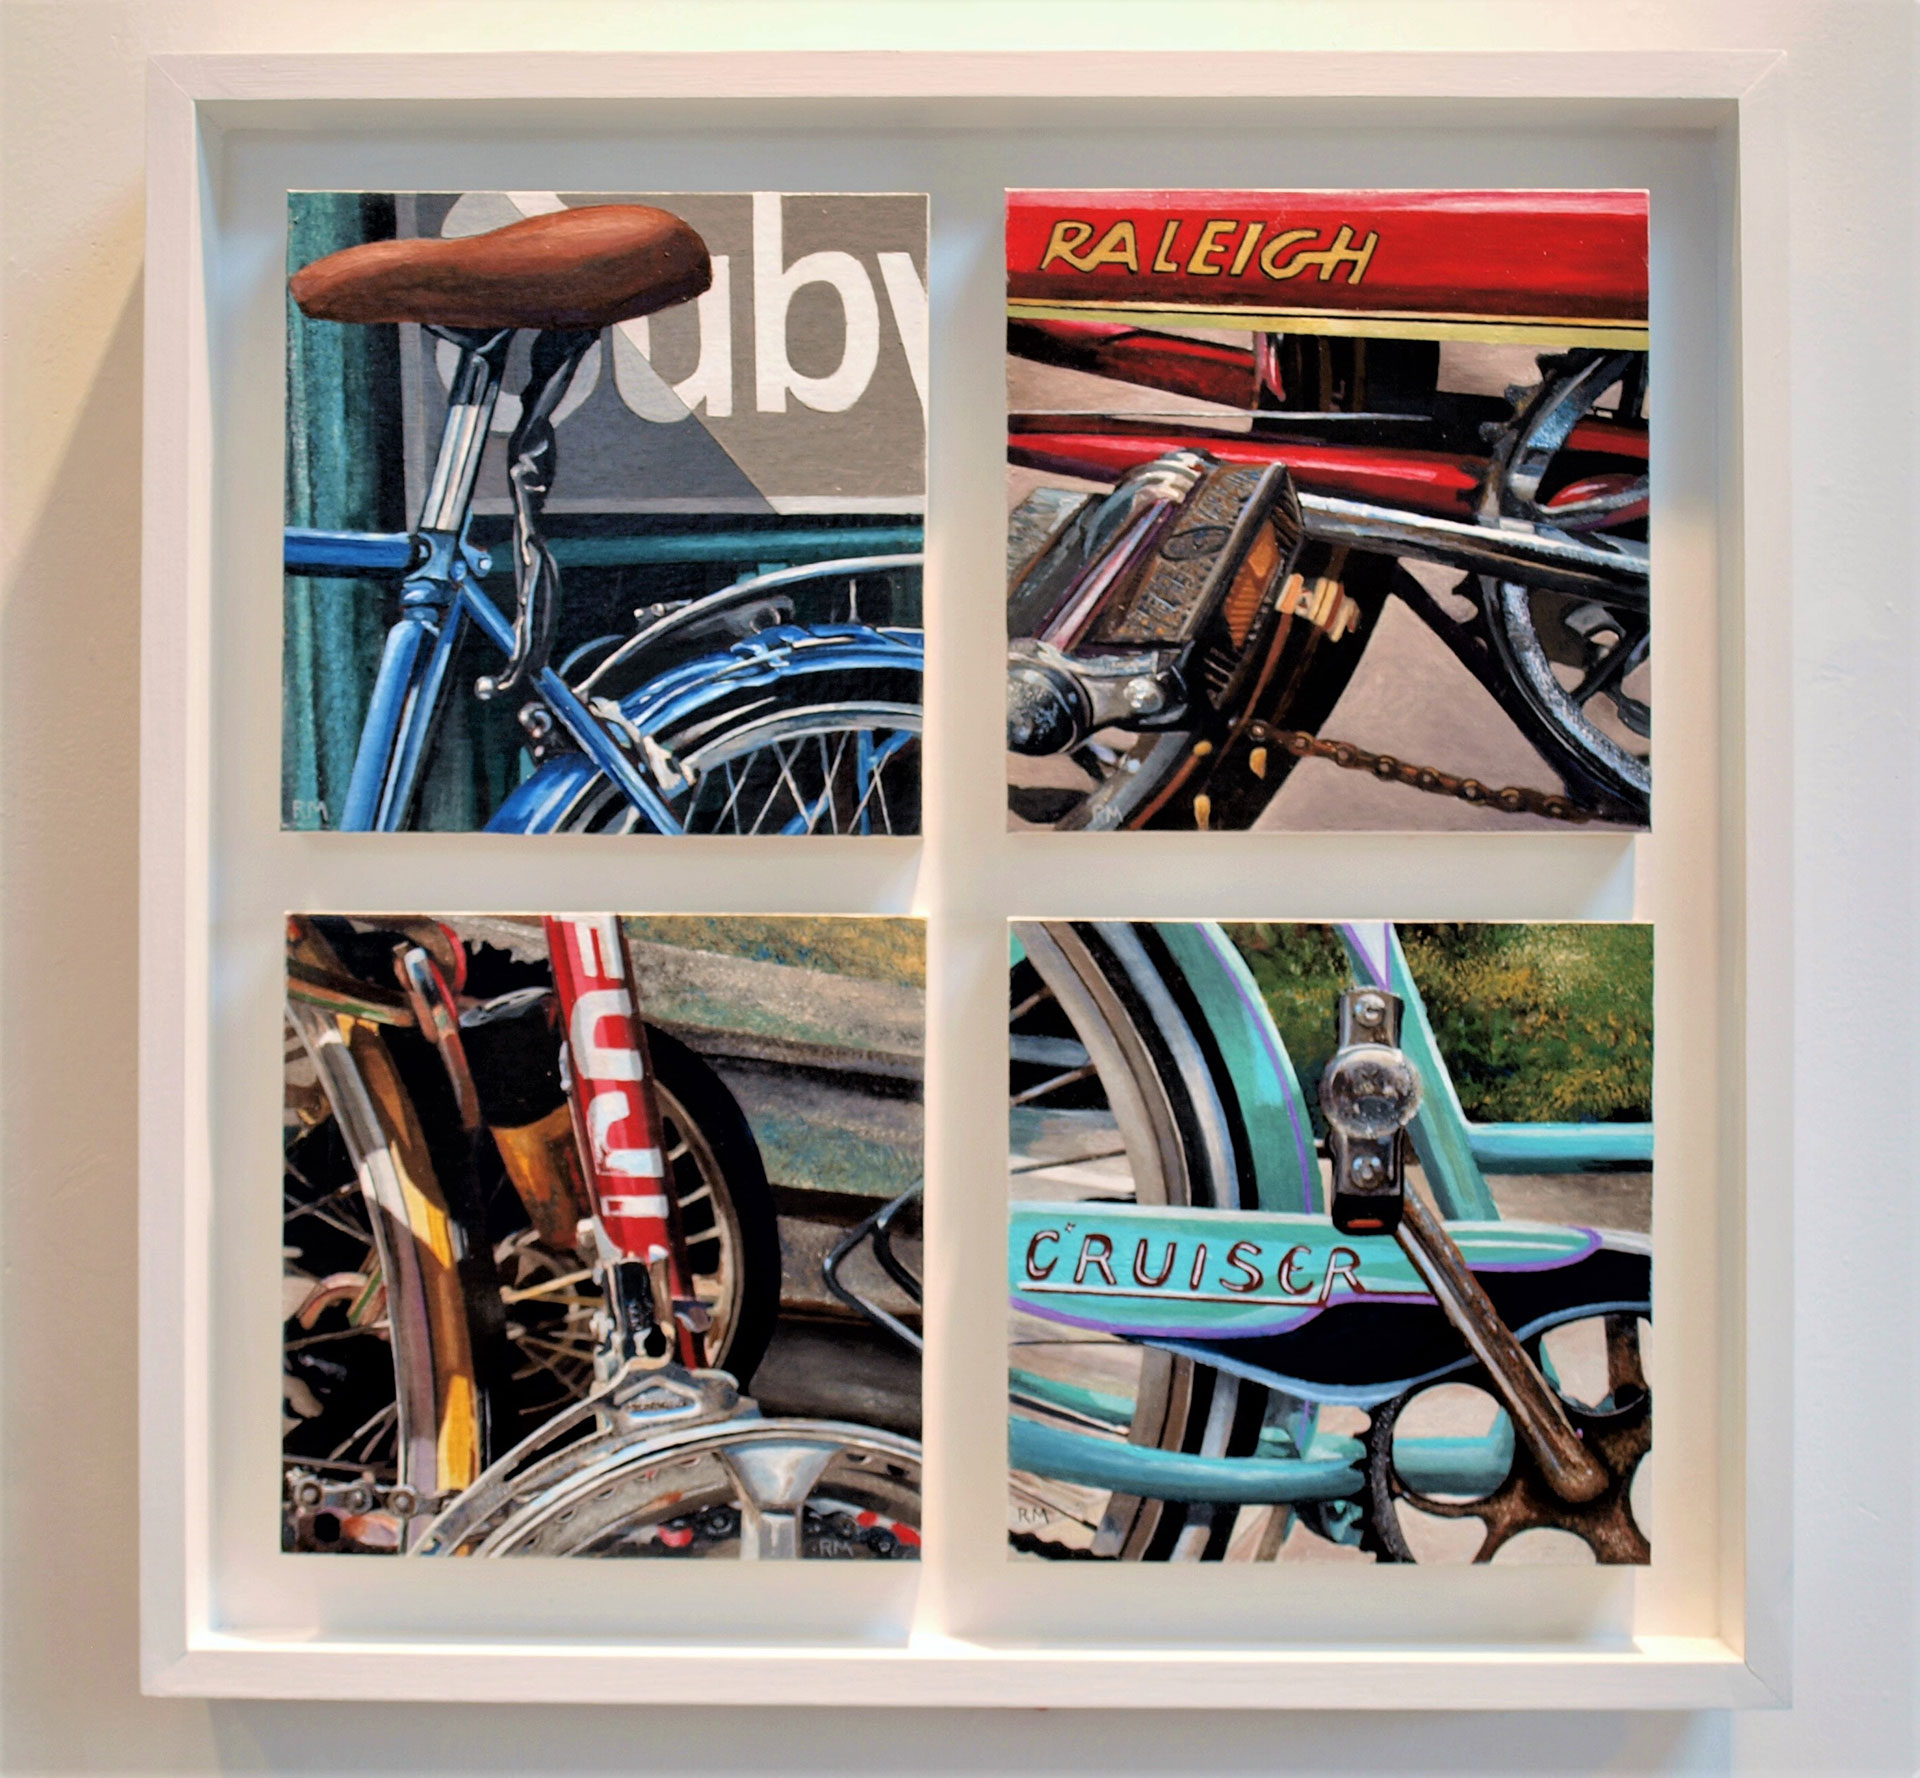 Robert Mielenhausen, Bike Fragments, Series III. 25.5 x 25.5 x 3.5 inches. Acrylic on canvas on board